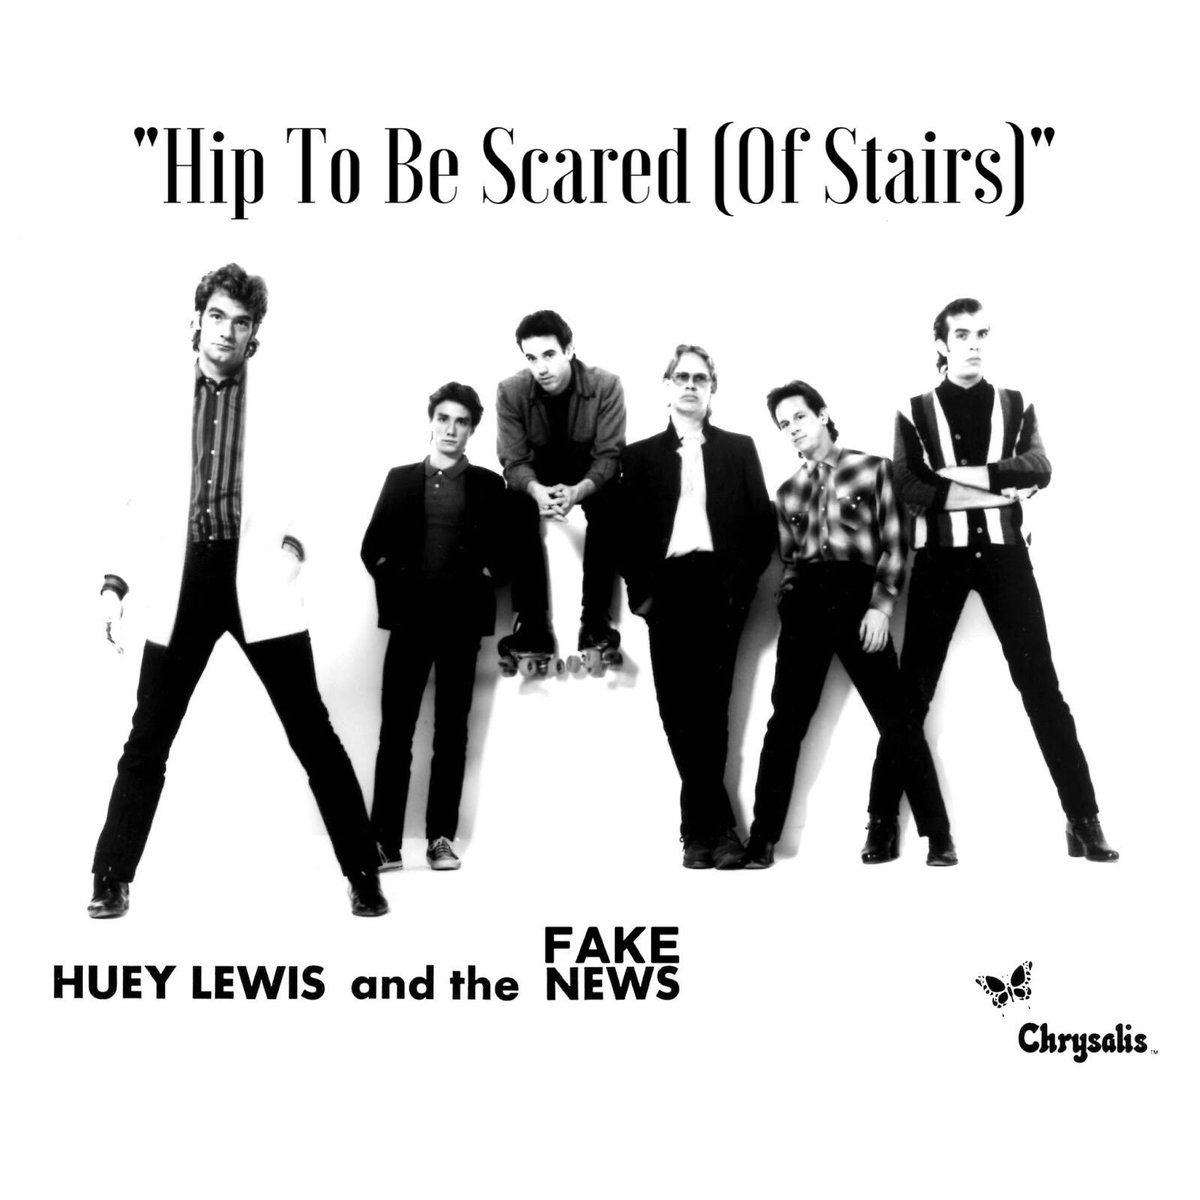 Huey Lewis & The Fake News - Hip To Be Scared (Of Stairs) #TrumpsD...